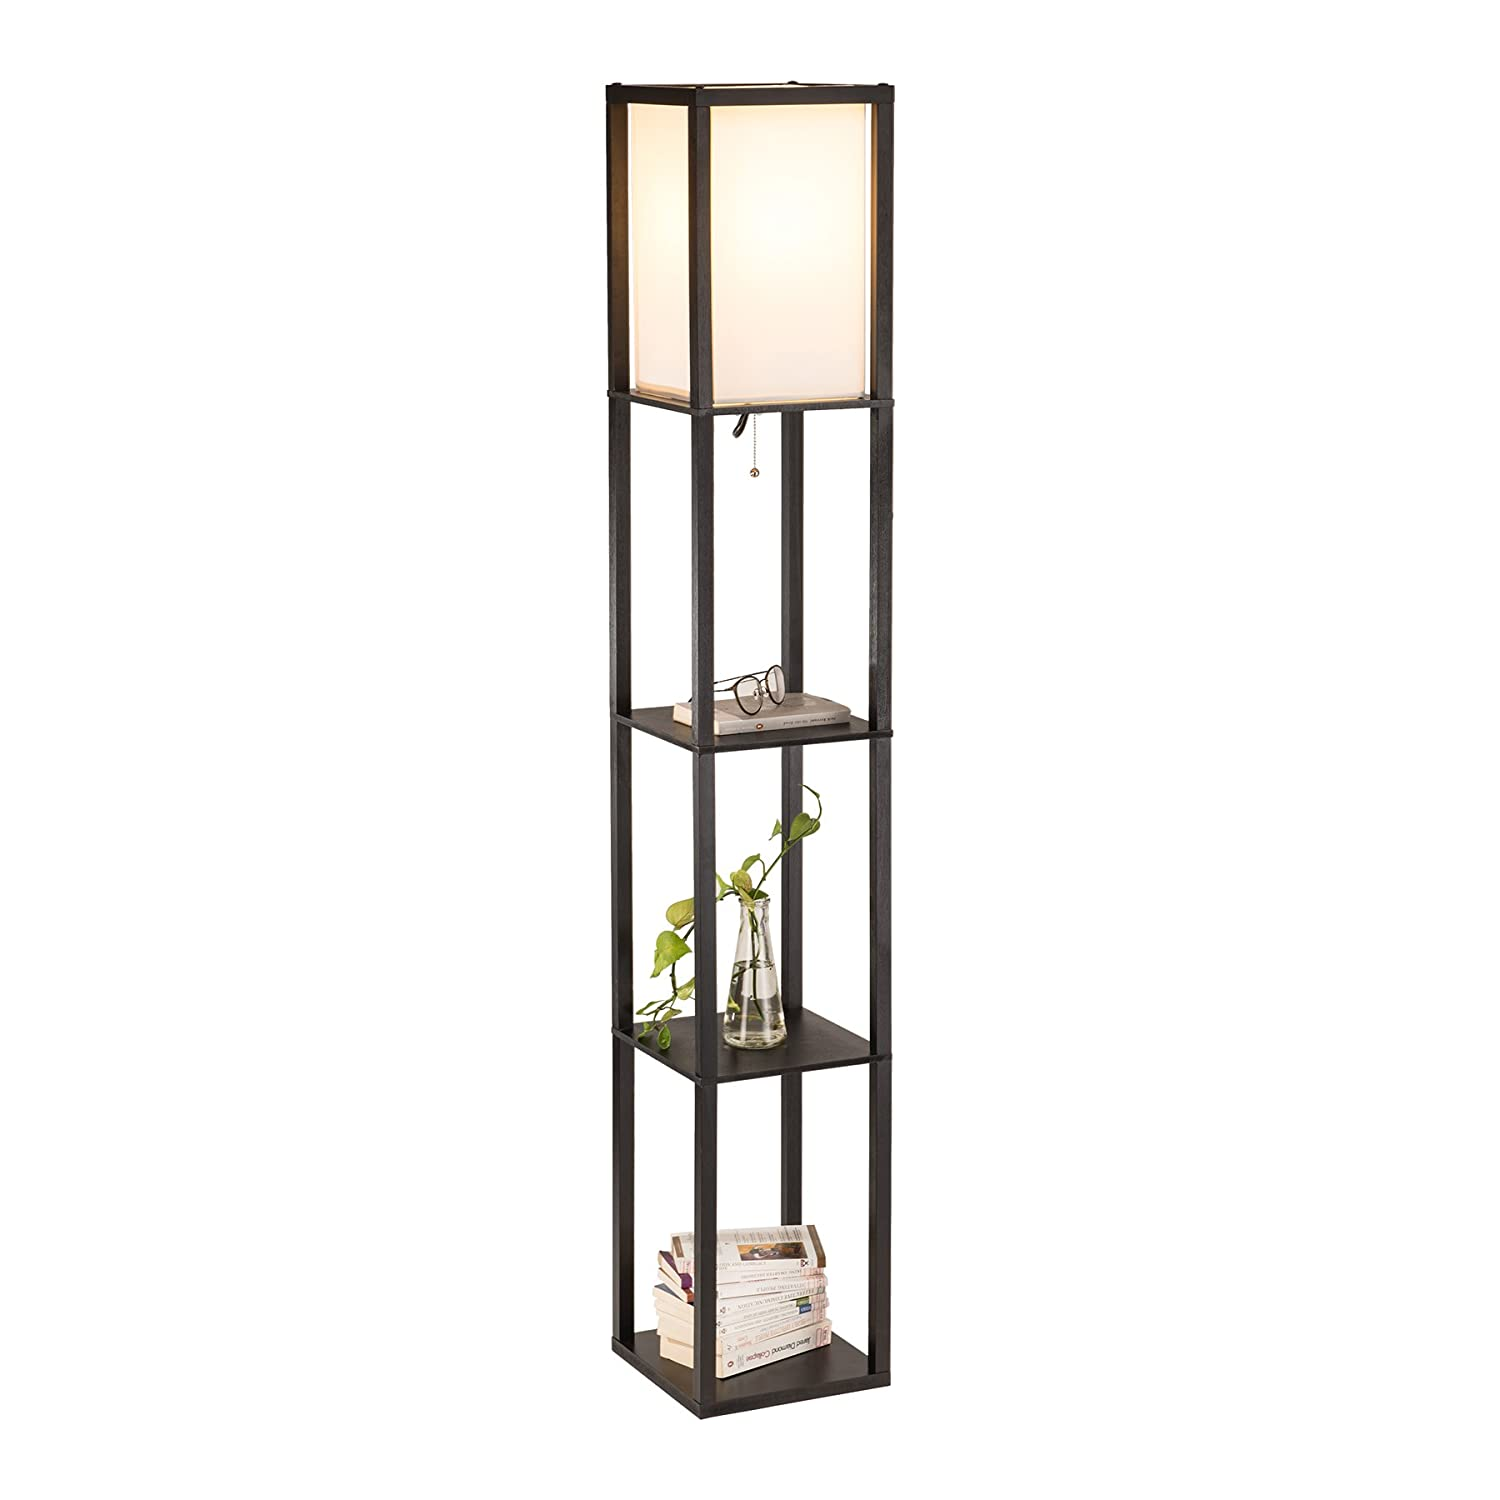 CO-Z Floor Lamp with Shelves, Etagere Floor Lamp, Modern Standing Lamp with 3 Wood Storage Display Shelves for Corner Bedroom Bedside Living Room, Simple Stand Up Lamp with Soft Diffused Uplight